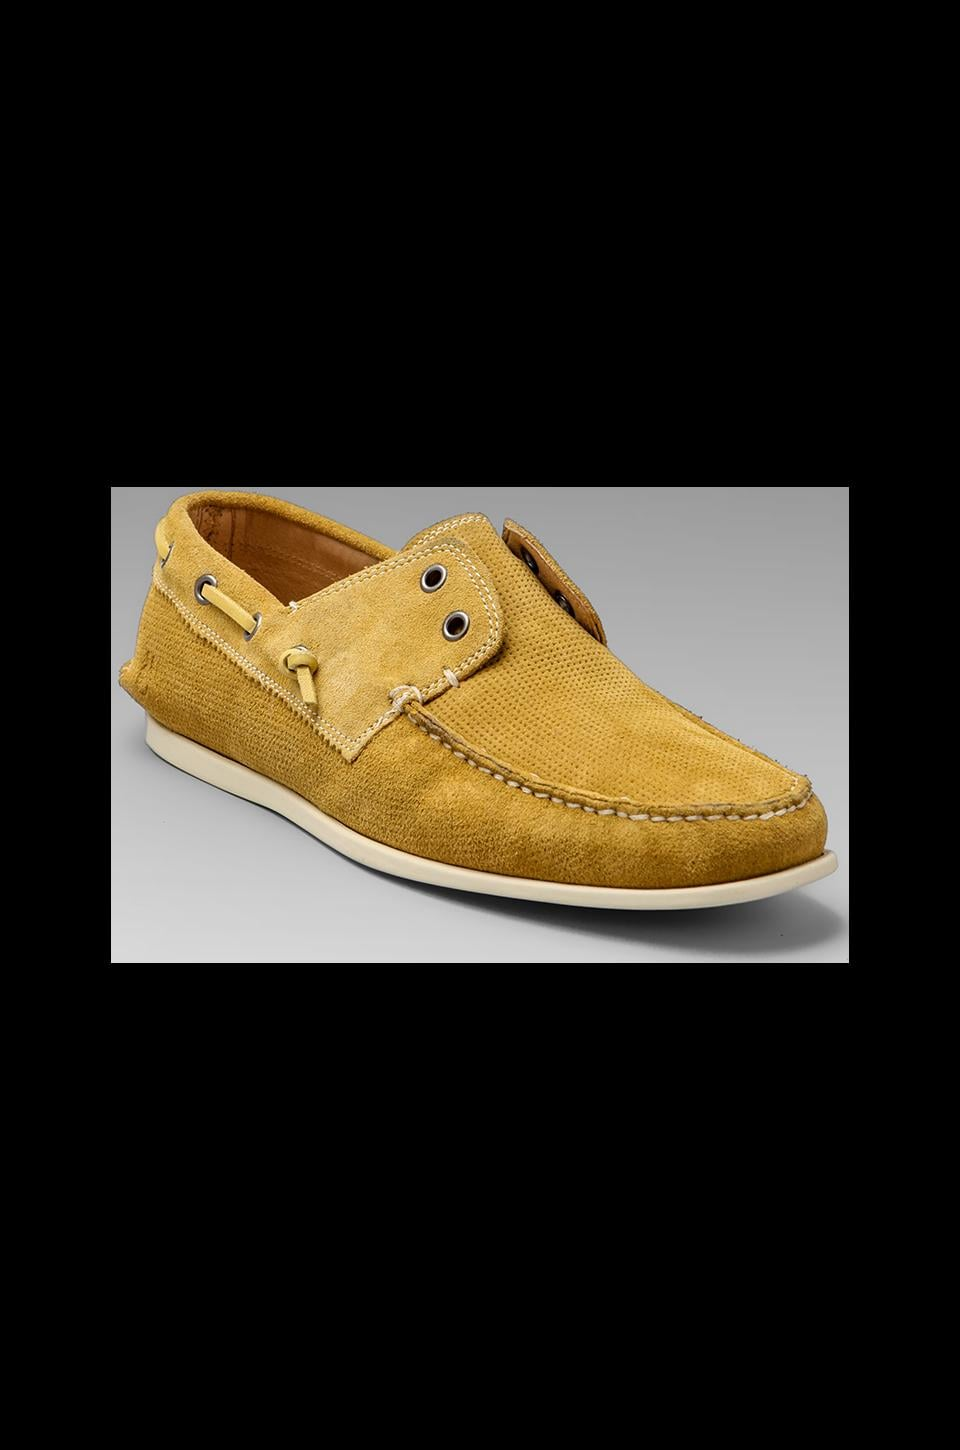 John Varvatos Star USA Schooner Boat Shoe in Scotch